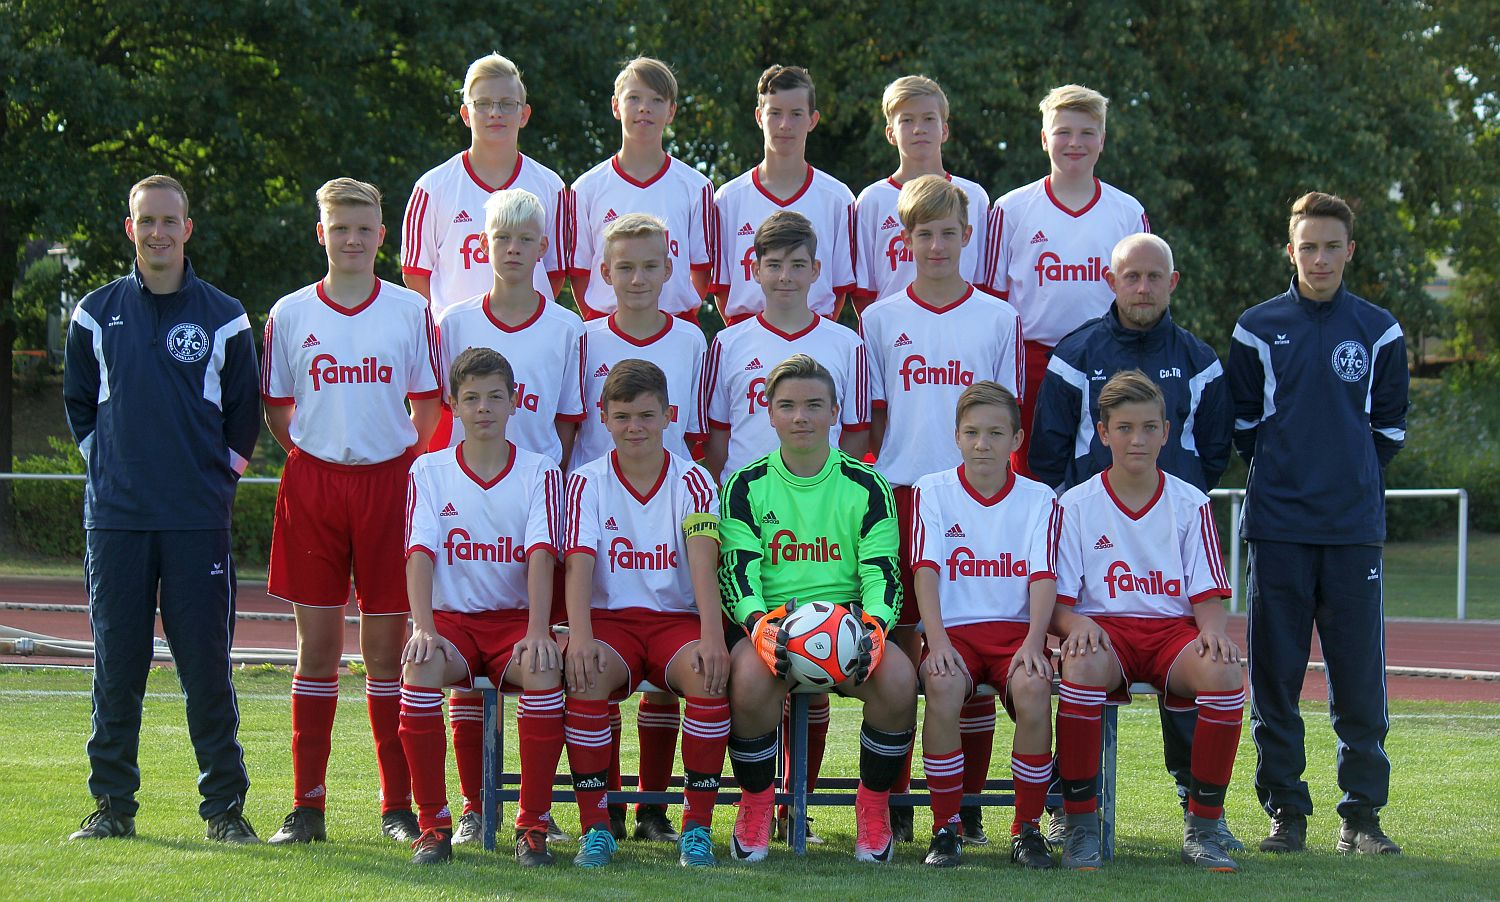 Landesliga: C1-Junioren jubeln in Pasewalk